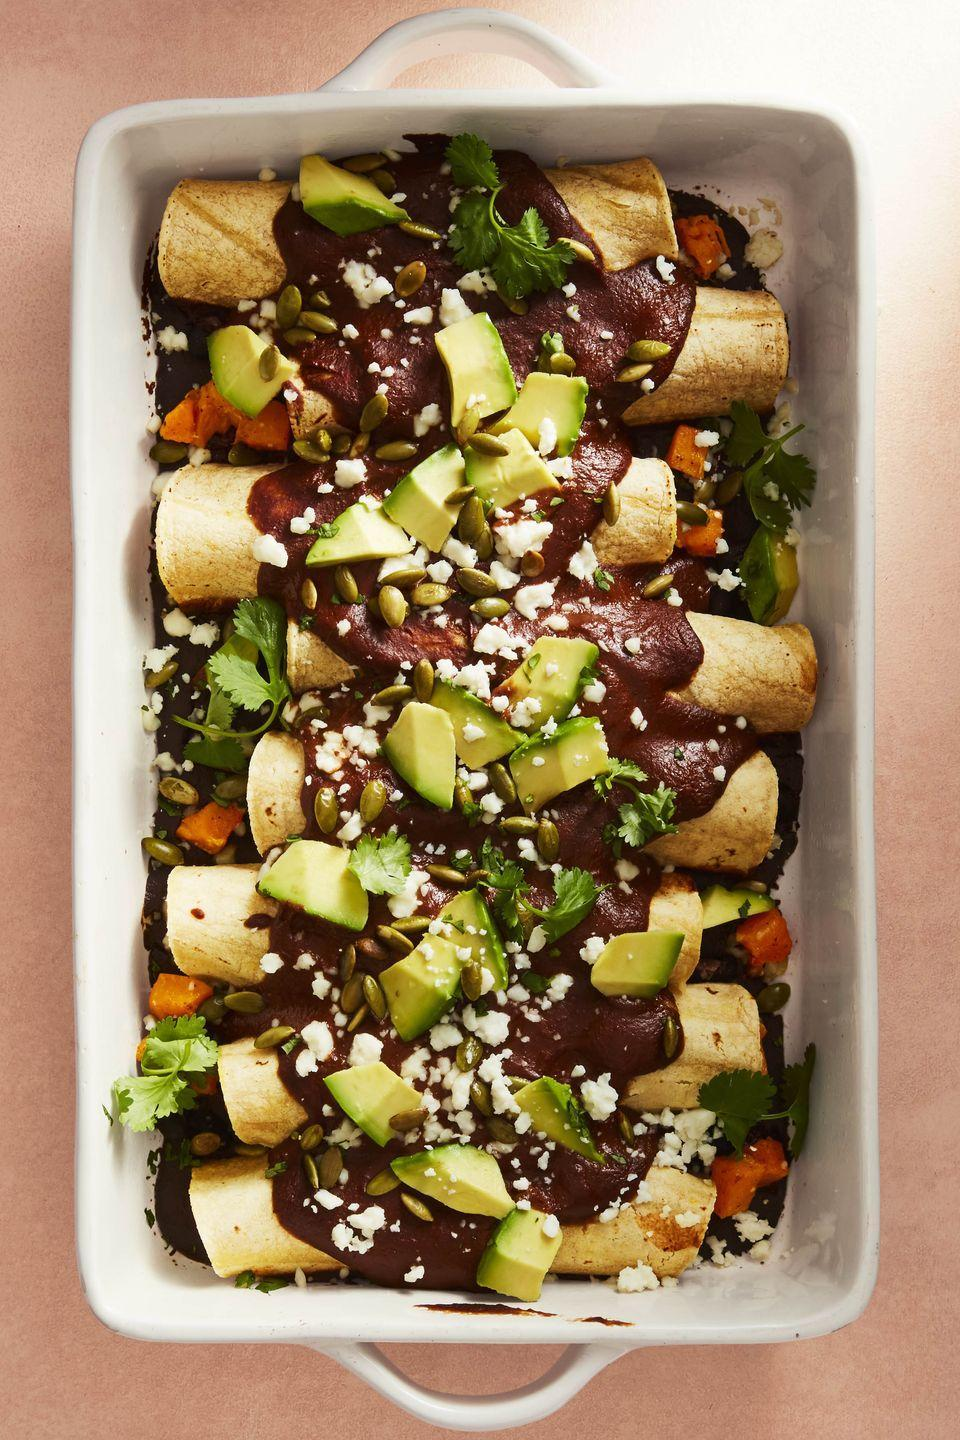 """<p>We bet you never thought of drizzling a peanut butter and chocolate sauce atop bean enchiladas. Well, think again.</p><p><em><a href=""""https://www.goodhousekeeping.com/food-recipes/healthy/a47527/butternut-mole-enchiladas-recipe/"""" rel=""""nofollow noopener"""" target=""""_blank"""" data-ylk=""""slk:Get the recipe for Butternut Mole Enchiladas »"""" class=""""link rapid-noclick-resp"""">Get the recipe for Butternut Mole Enchiladas »</a></em></p>"""